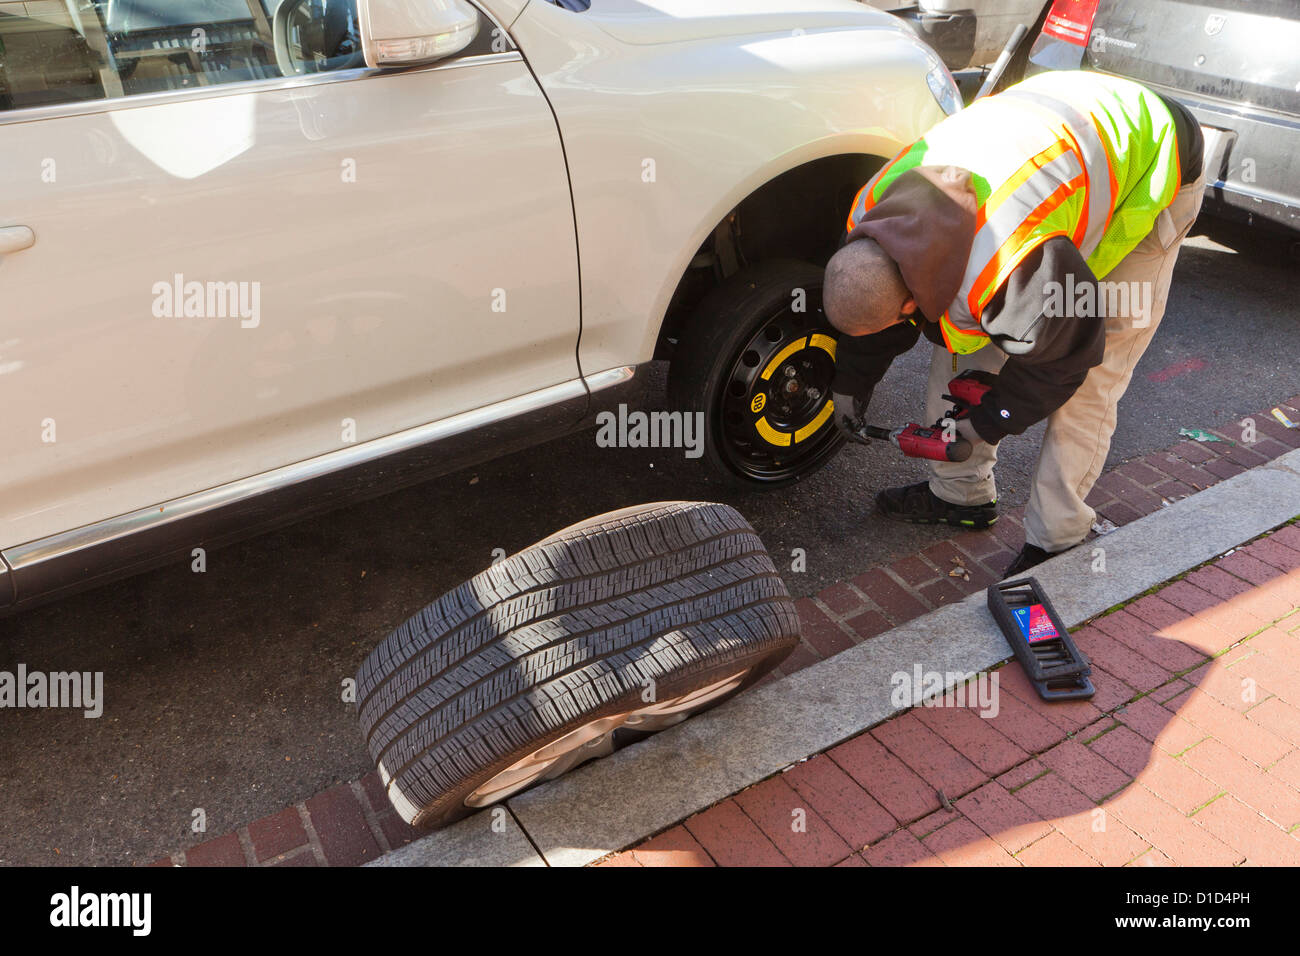 Man changing a flat tire - Stock Image